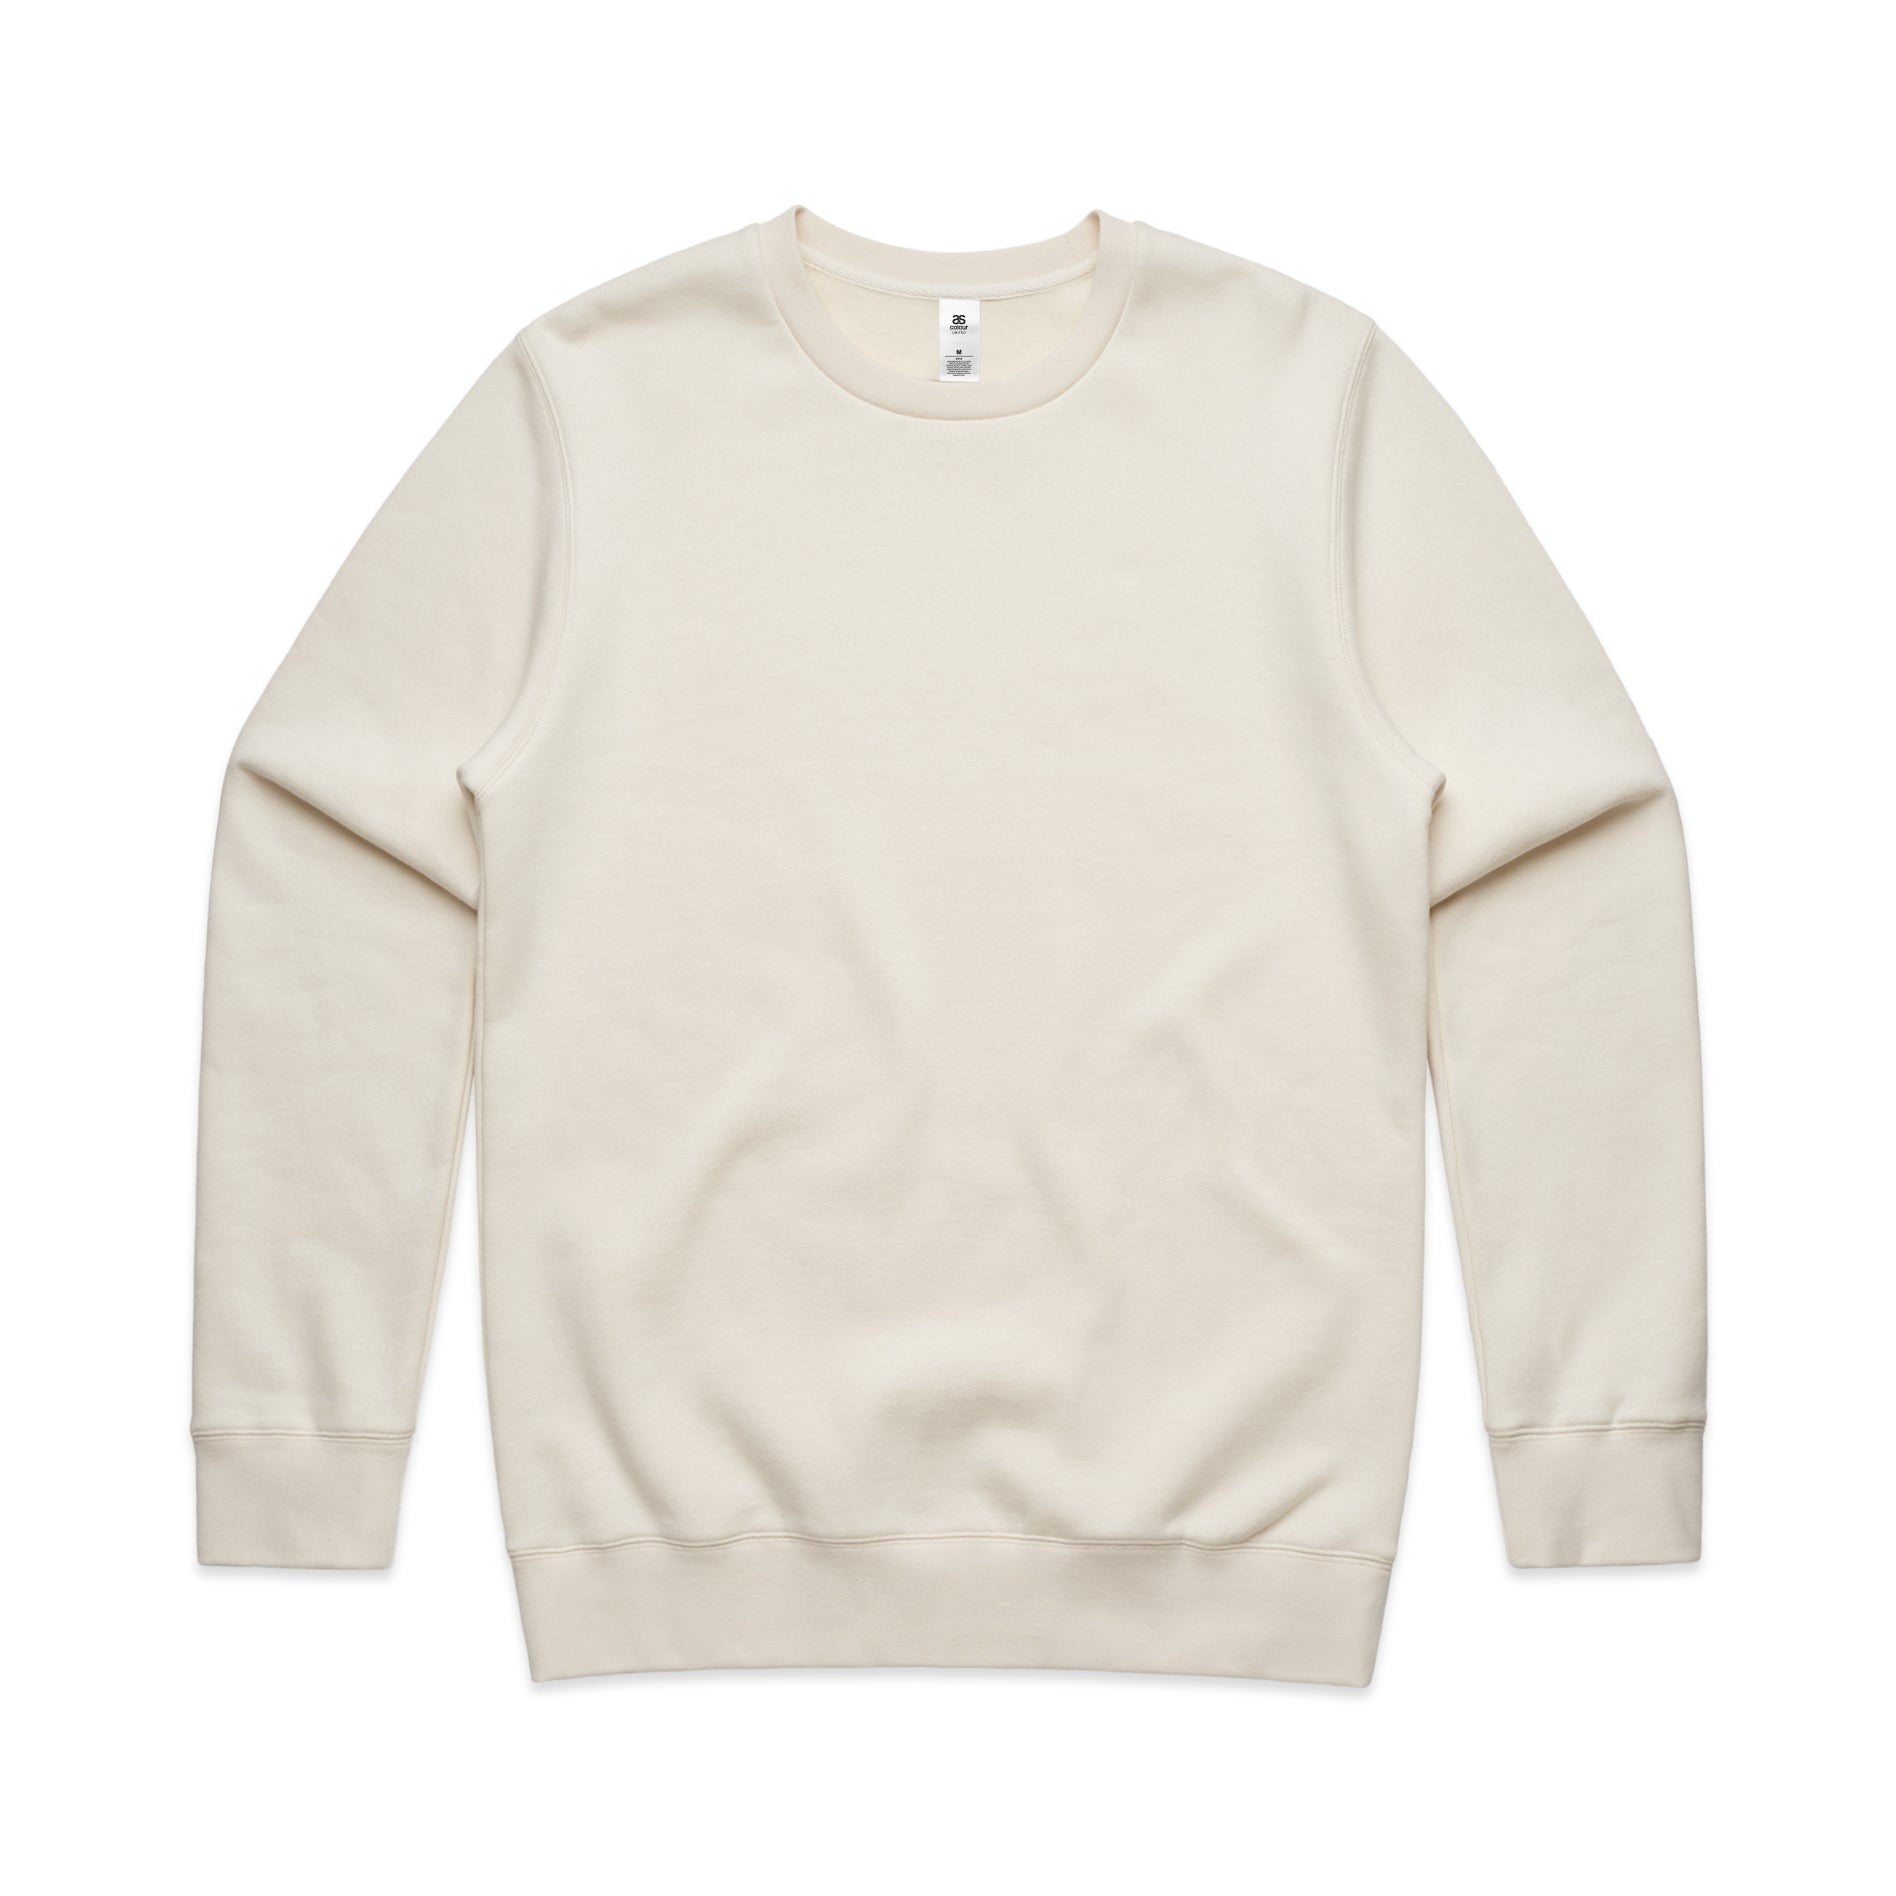 Stock issues for high-end sweatshirts?